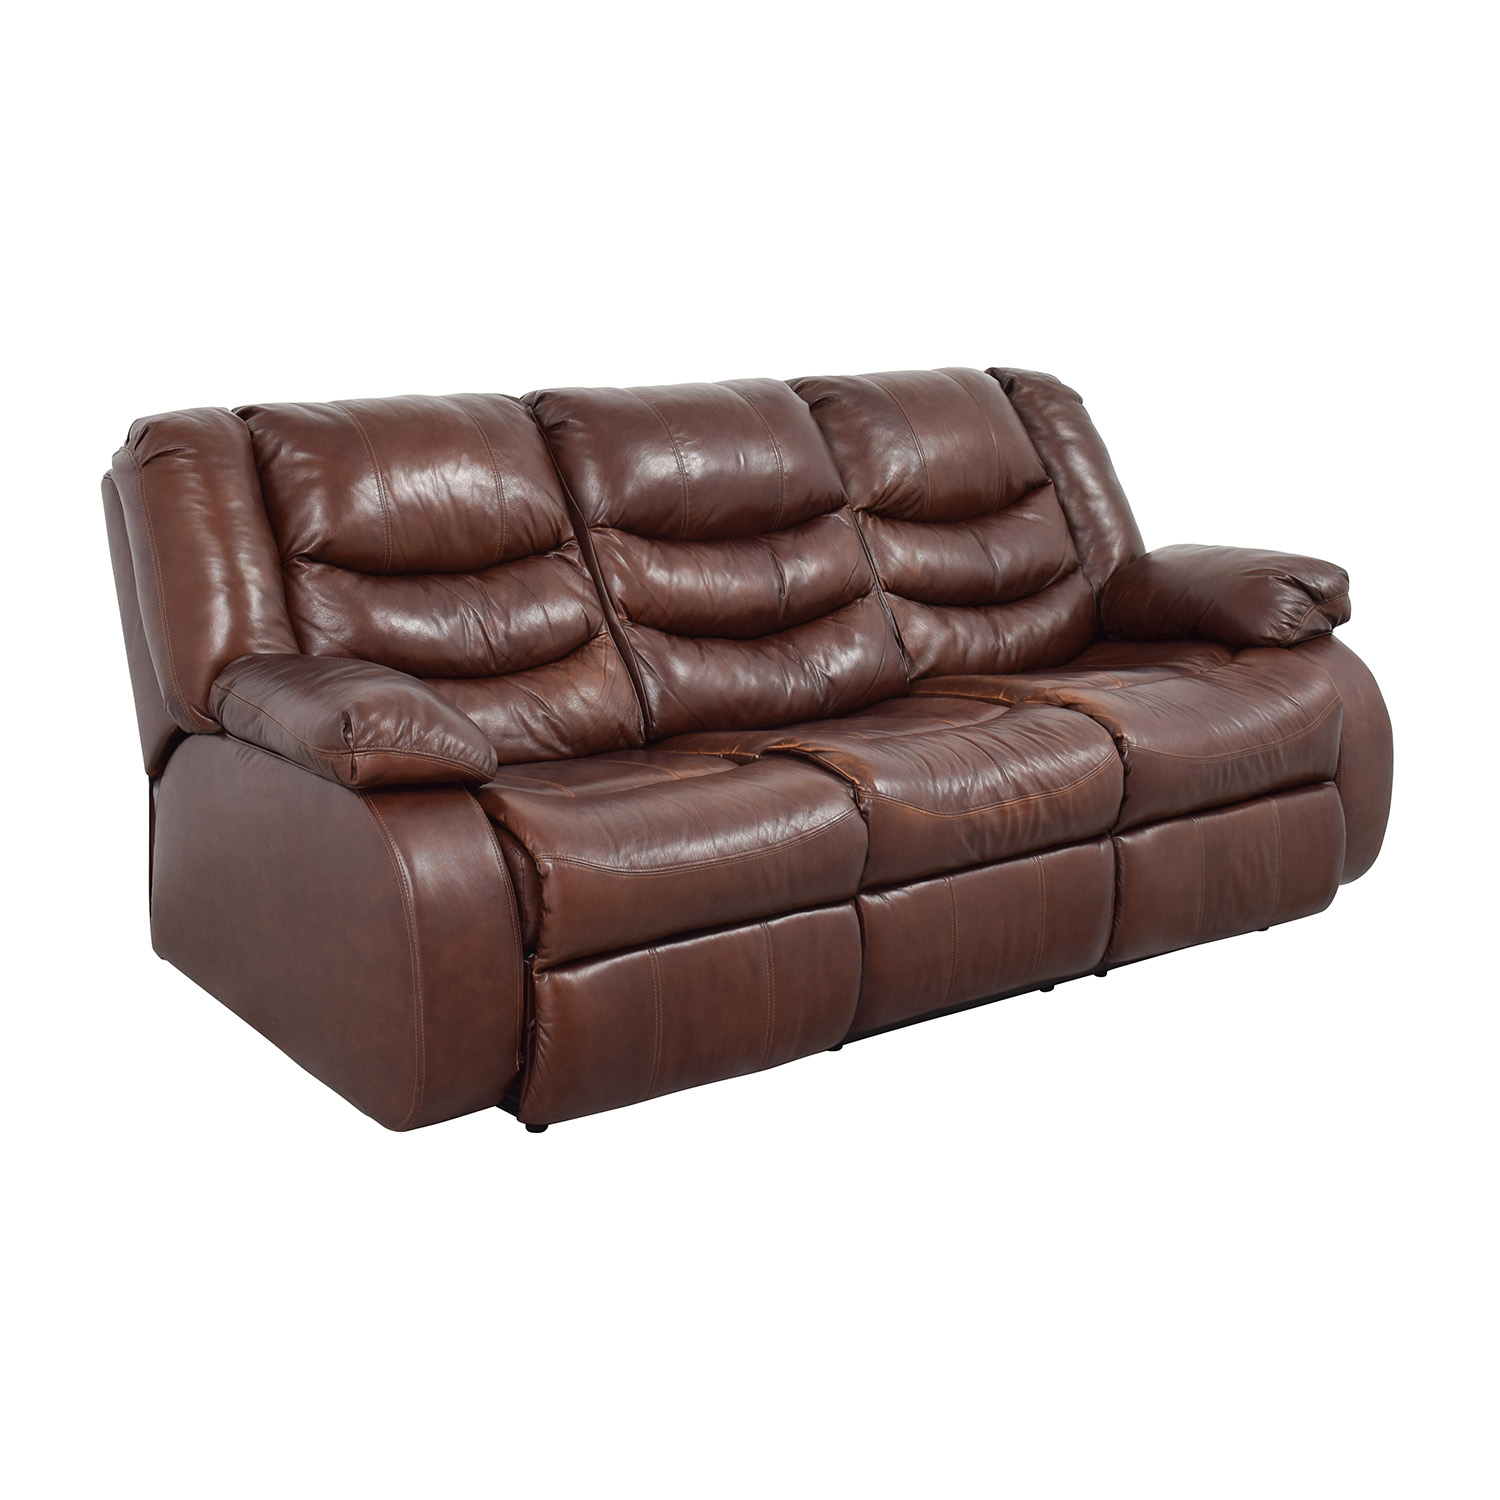 Ashleys Furniture Ashley Furniture Large Brown Leather Reclining Couch price